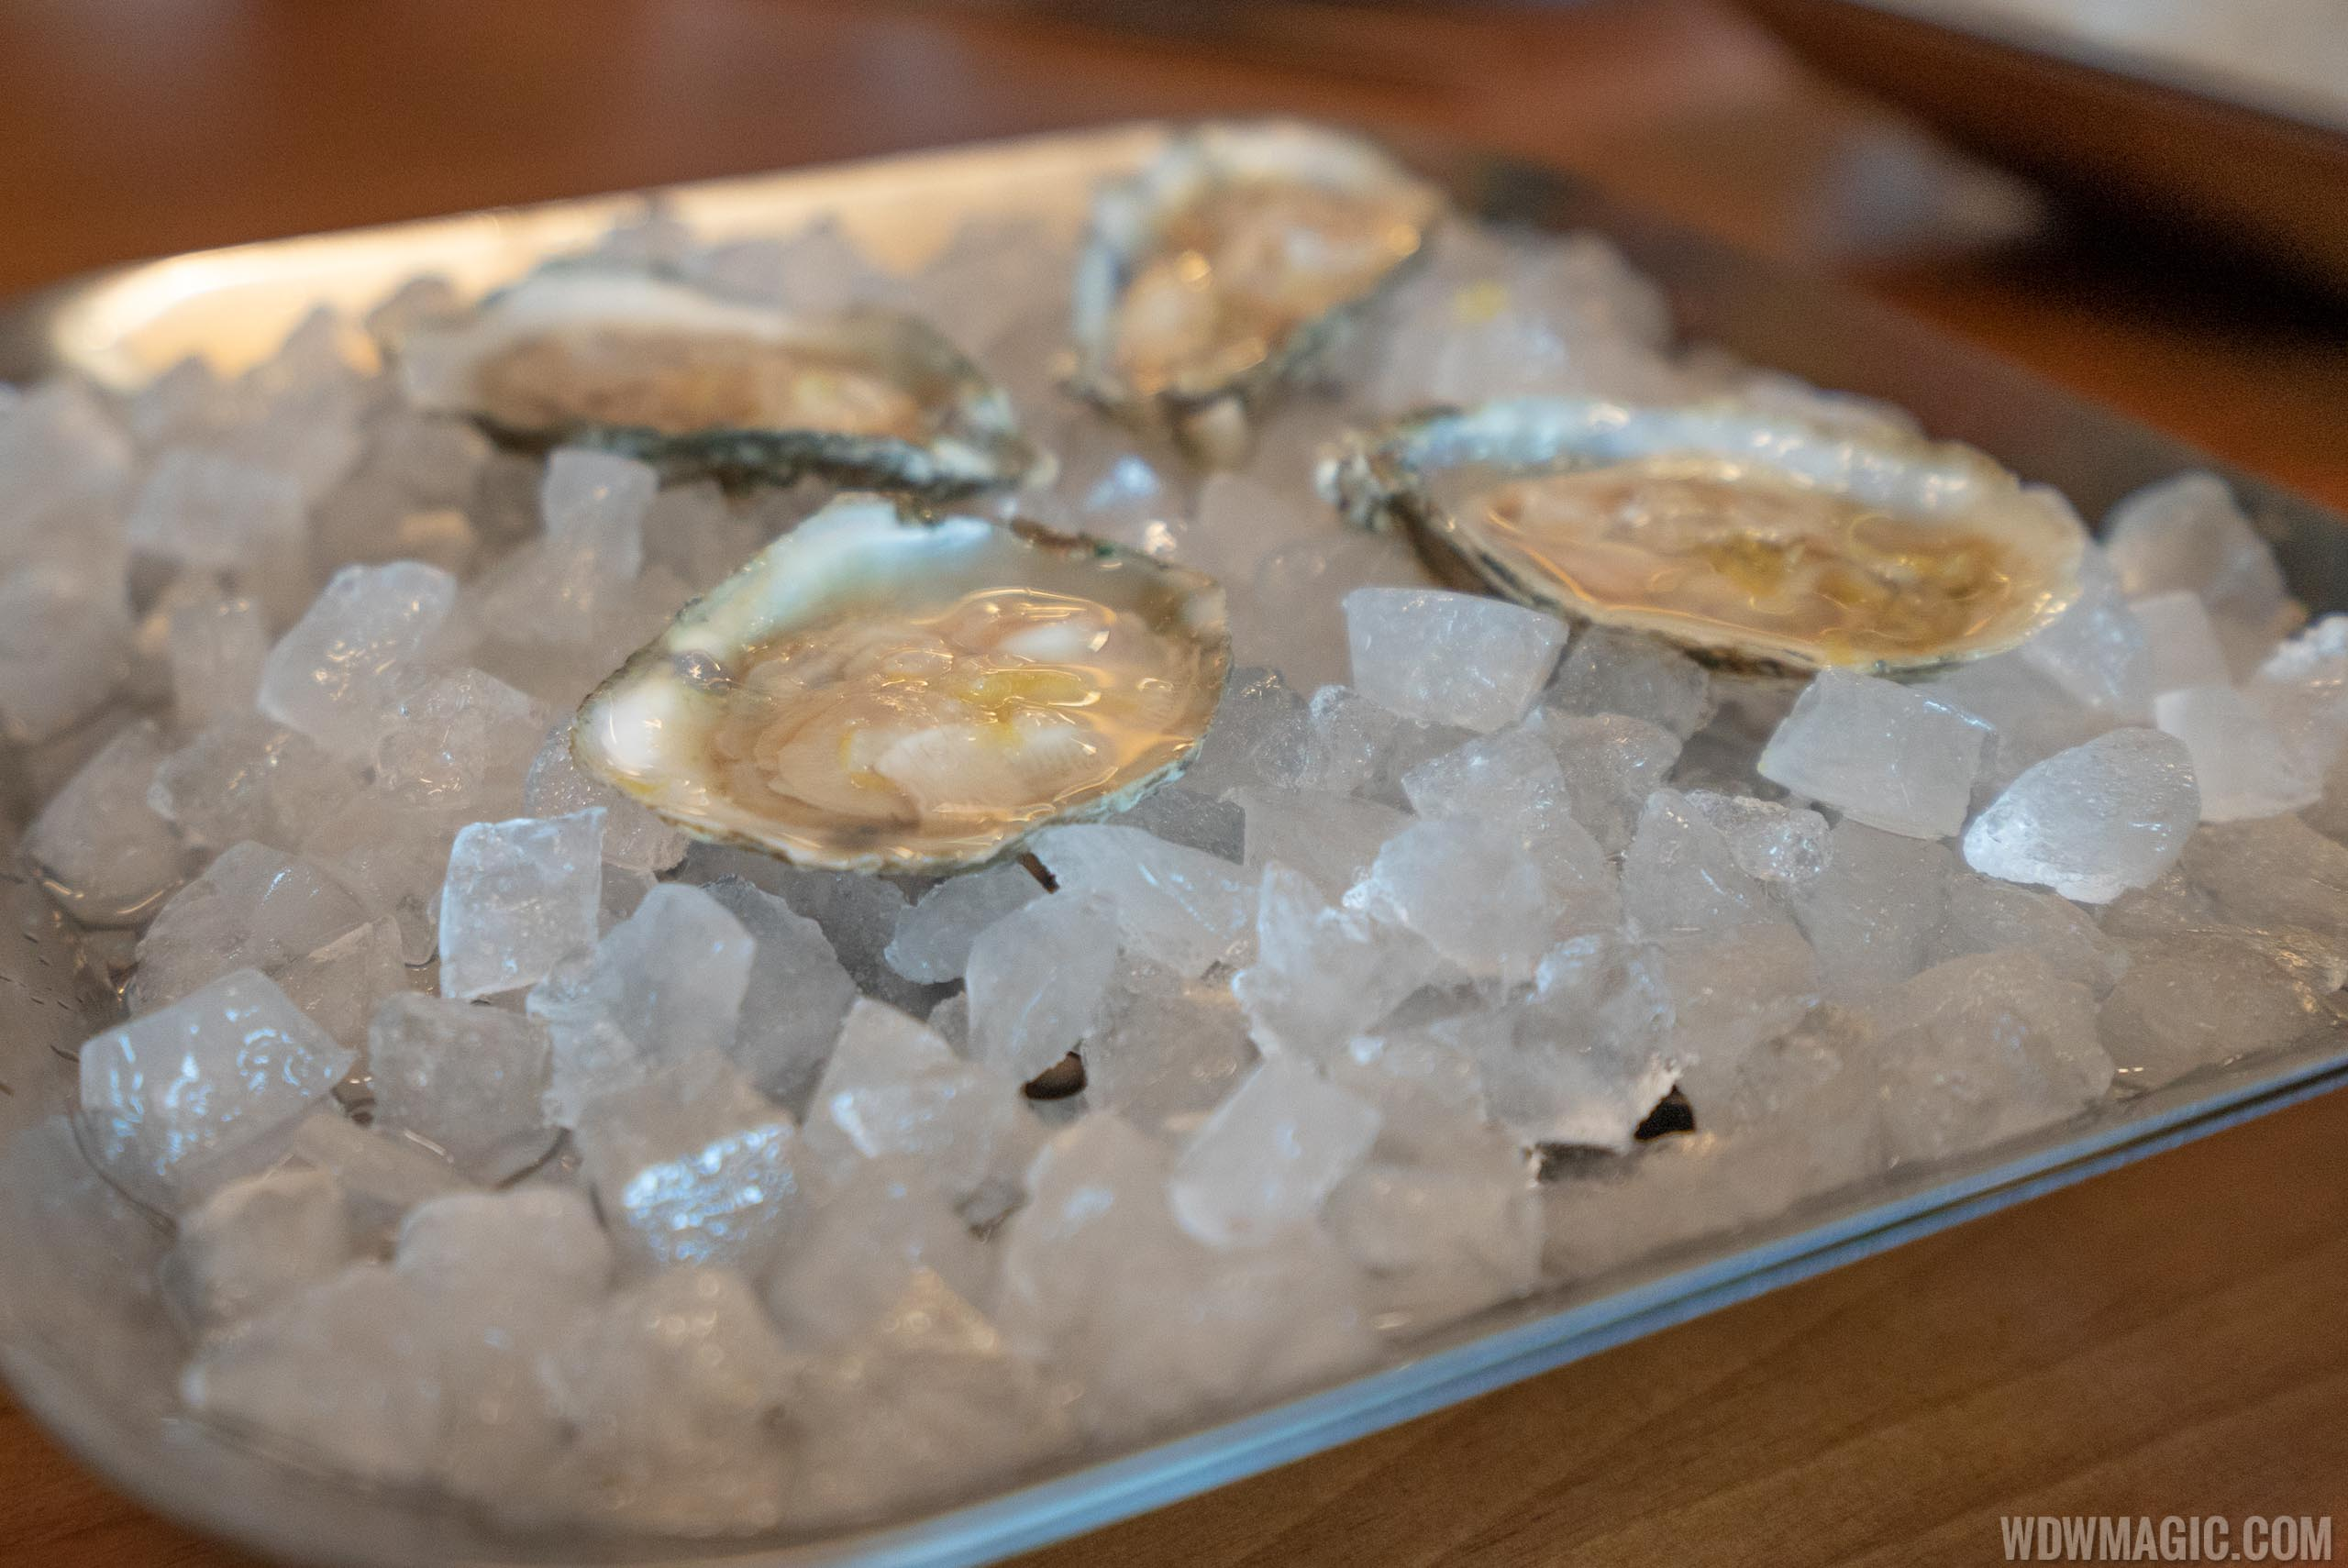 Chef's tasting menu: José's Way - Oysters with lemon, gin and tonic